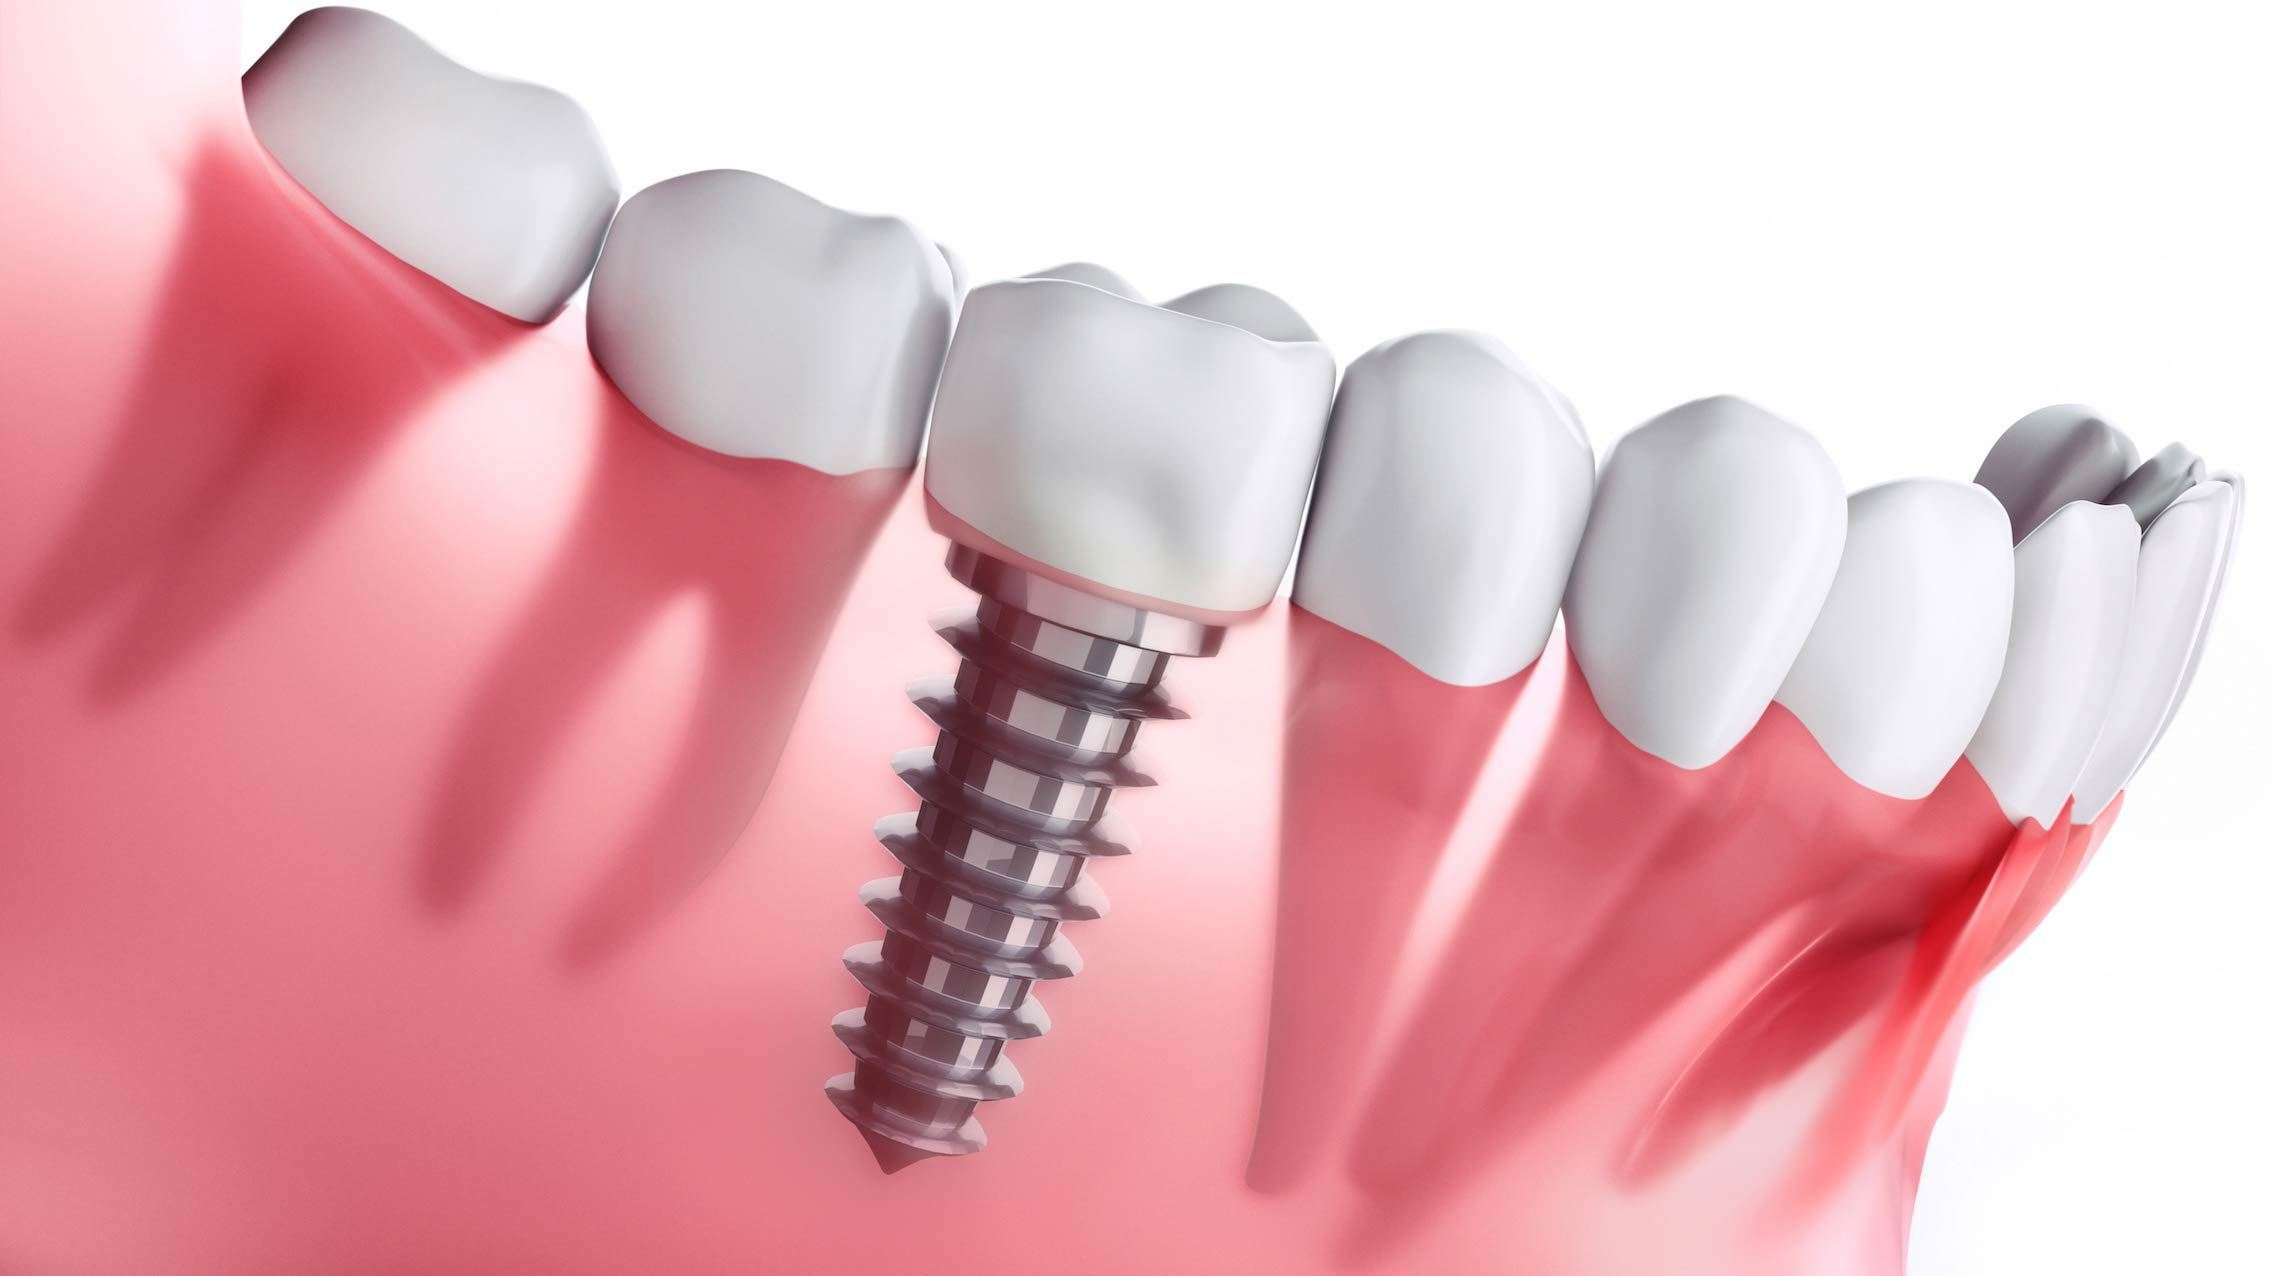 Dental Implants – A Unique & Promising Solution To Your Missing Teeth